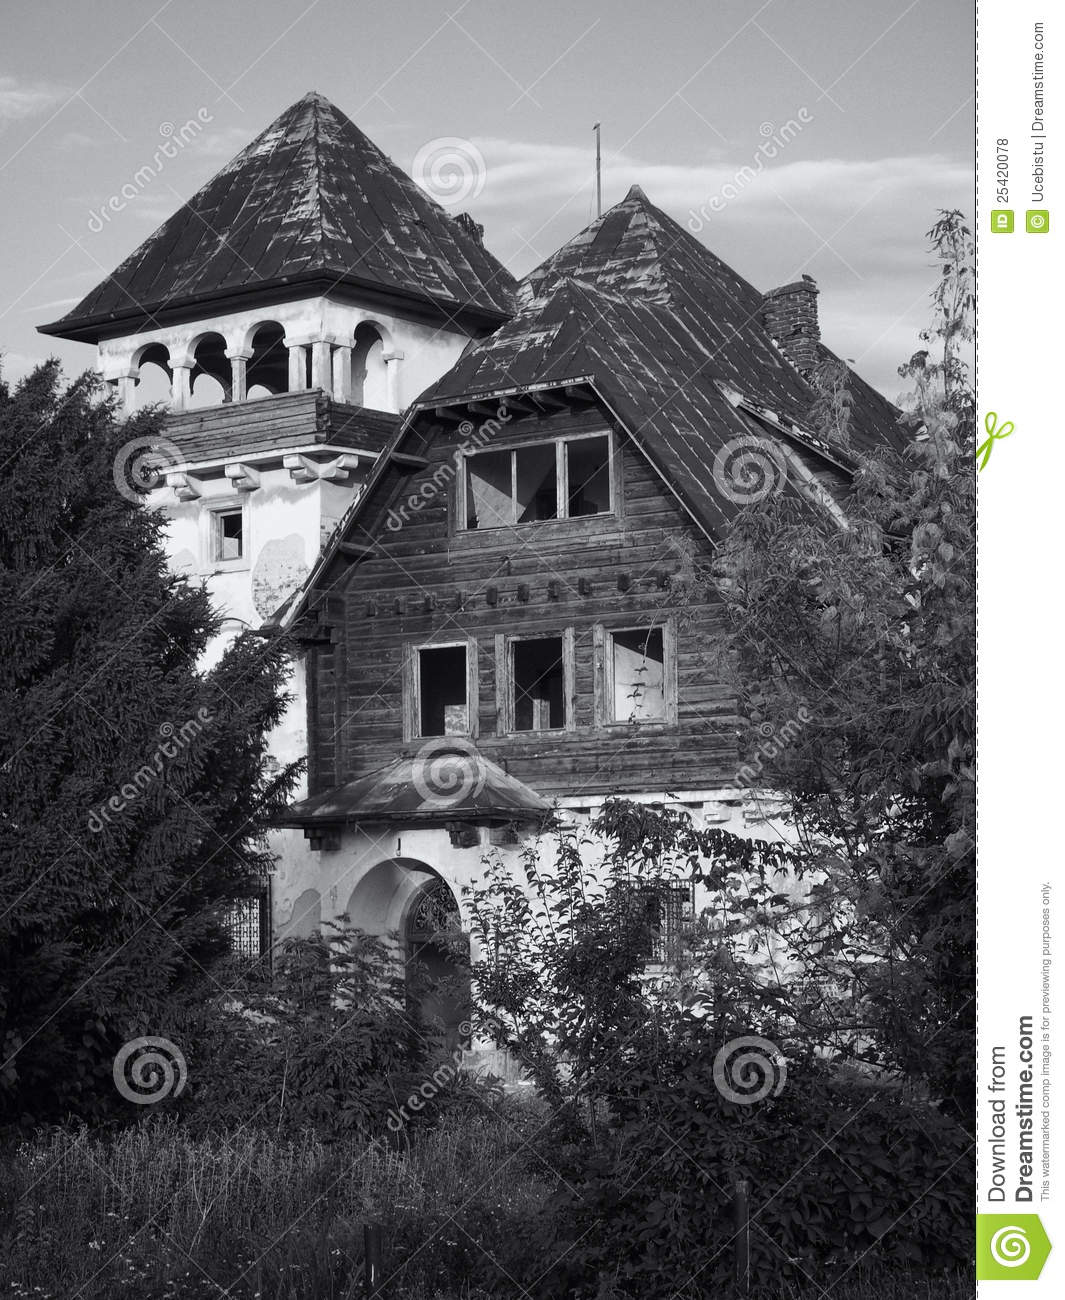 Abandoned House Stock Photo. Image Of Vintage, Outdoor